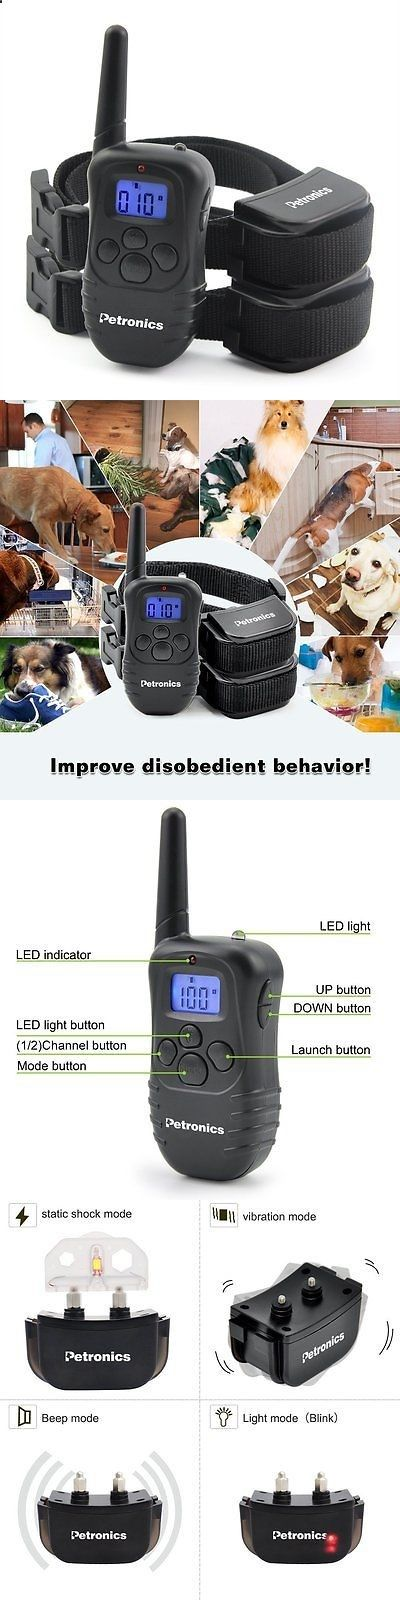 Electronic Fences 116388: 2016 Newest Electric Dog Fence 2 Wireless Shock Collar Waterproof Hidden System/ -> BUY IT NOW ONLY: $48.0 on eBay!